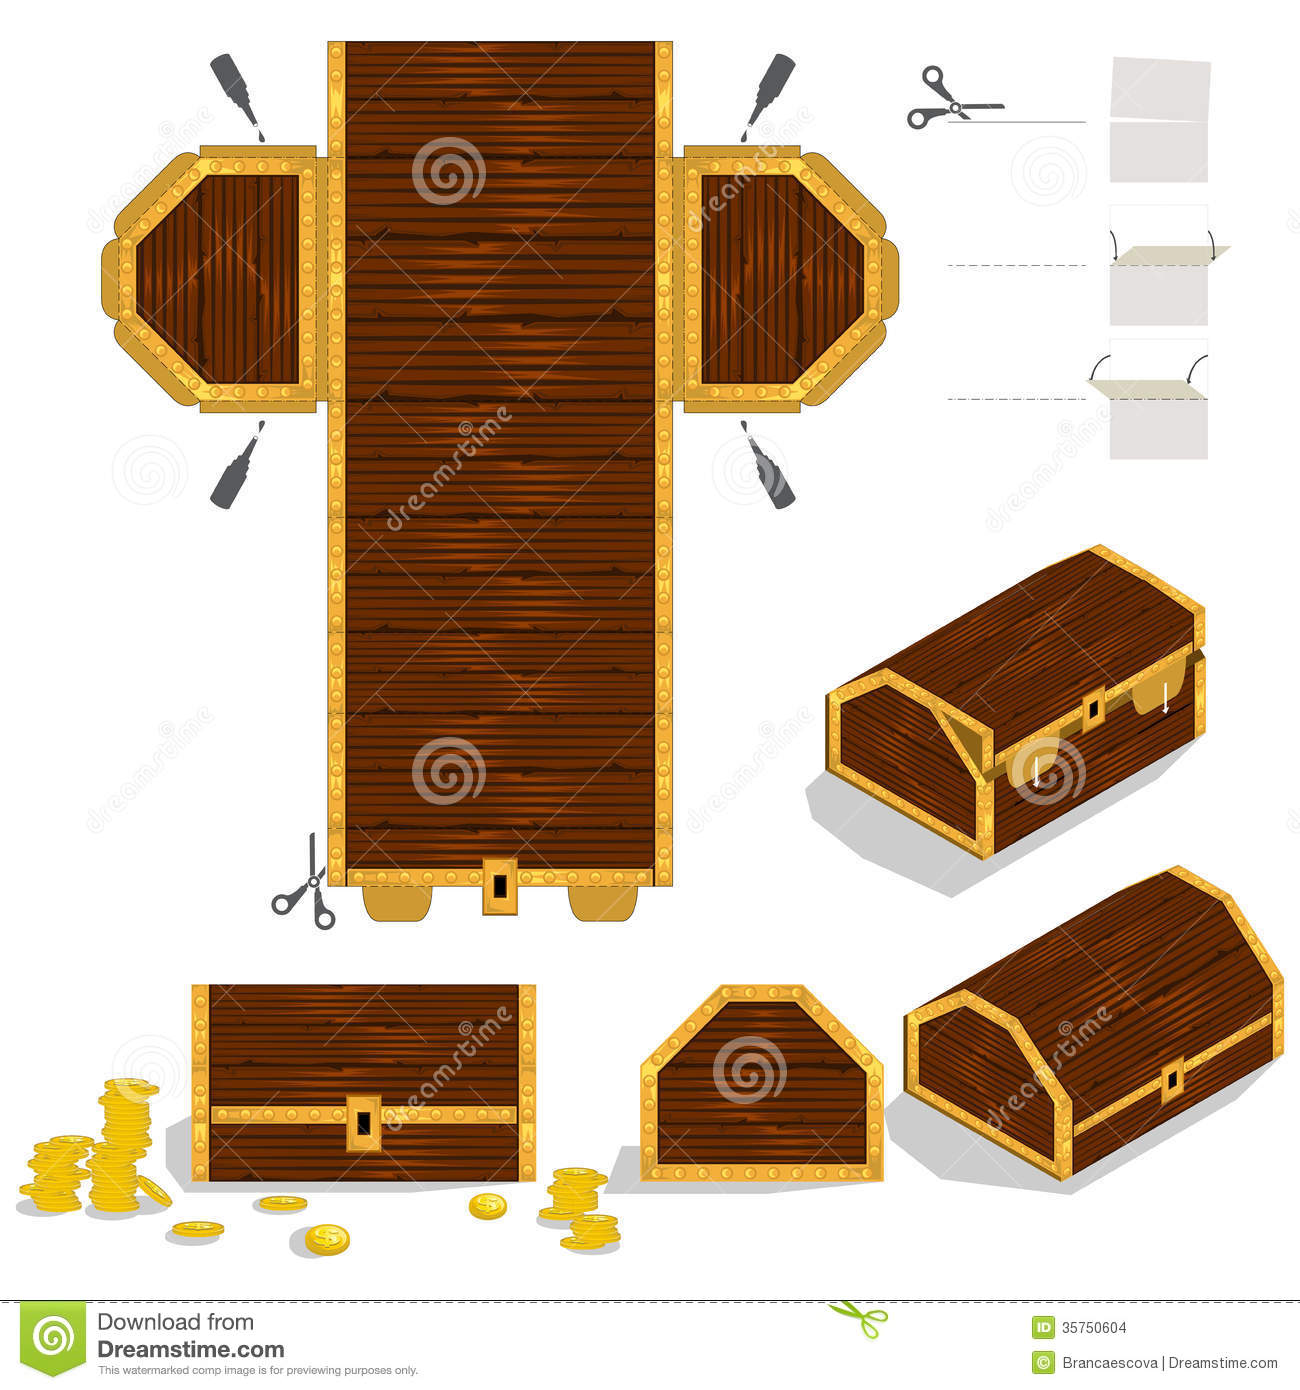 Treasure Chest Packaging Box Design Stock Images - Image: 35750604